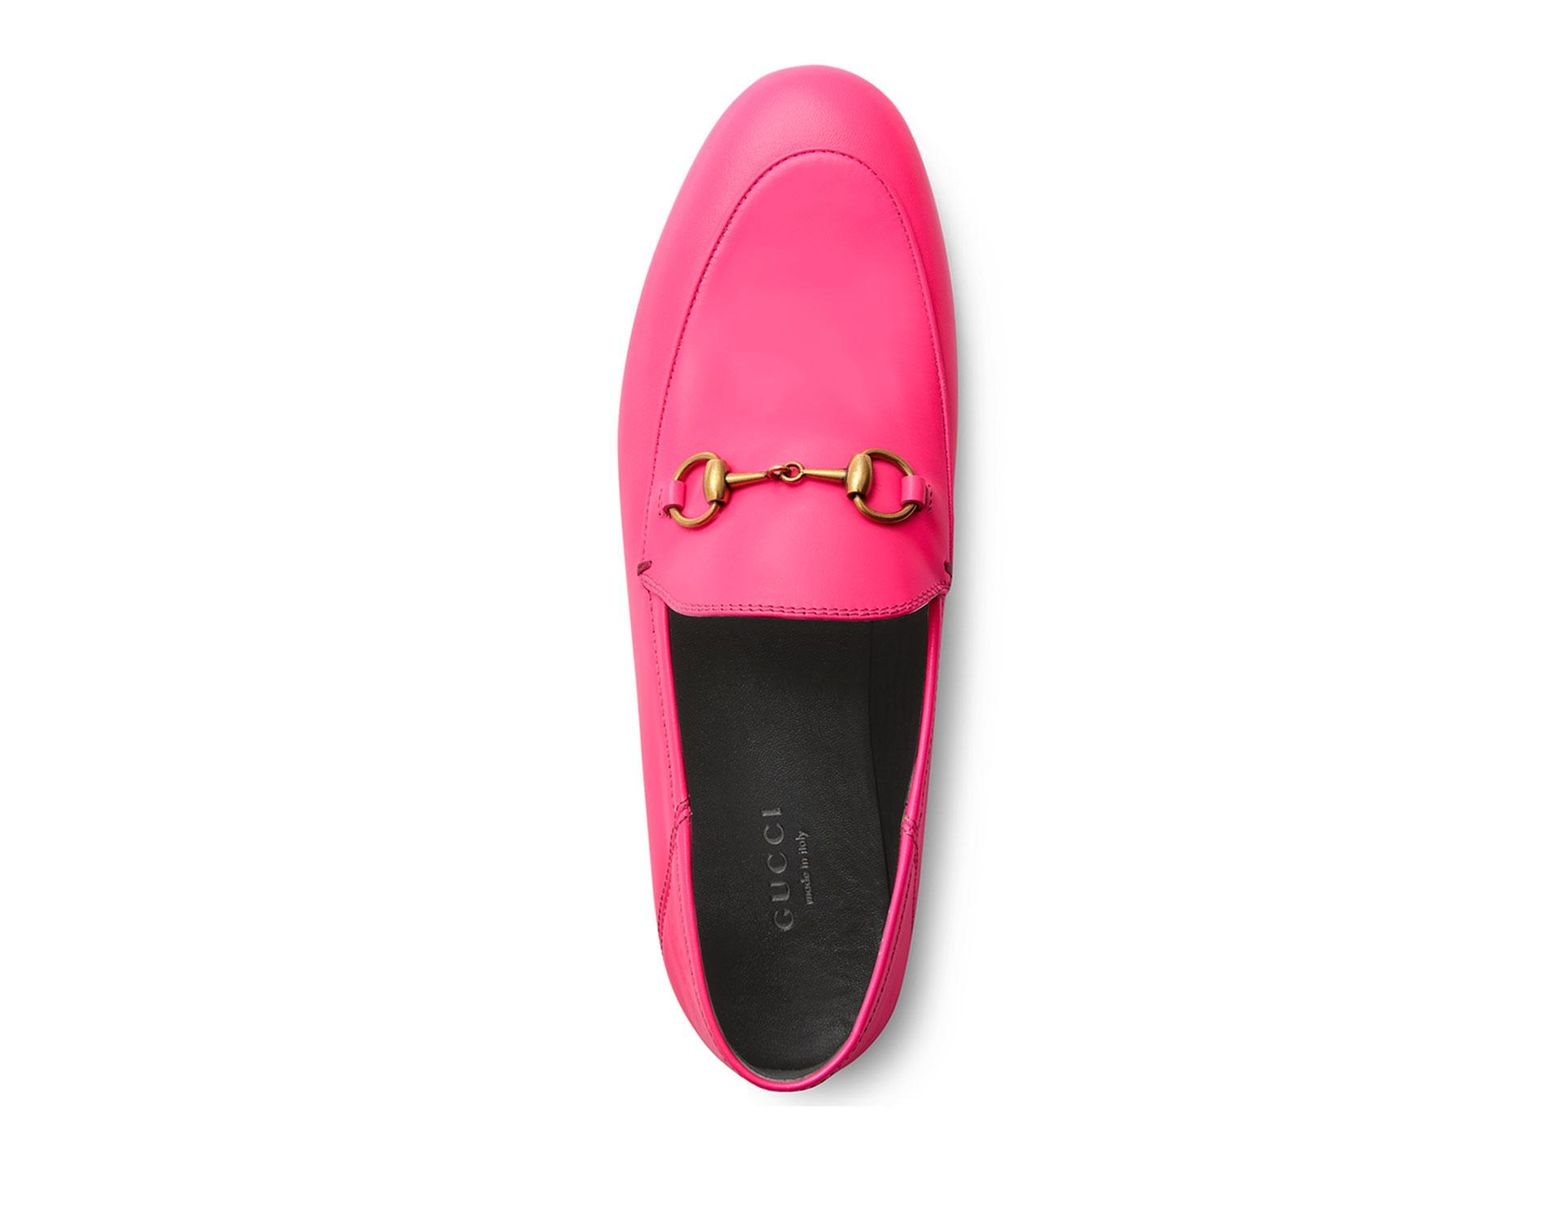 aeffa00ed Gucci Brixton Neon Leather Horsebit Loafers in Pink - Lyst